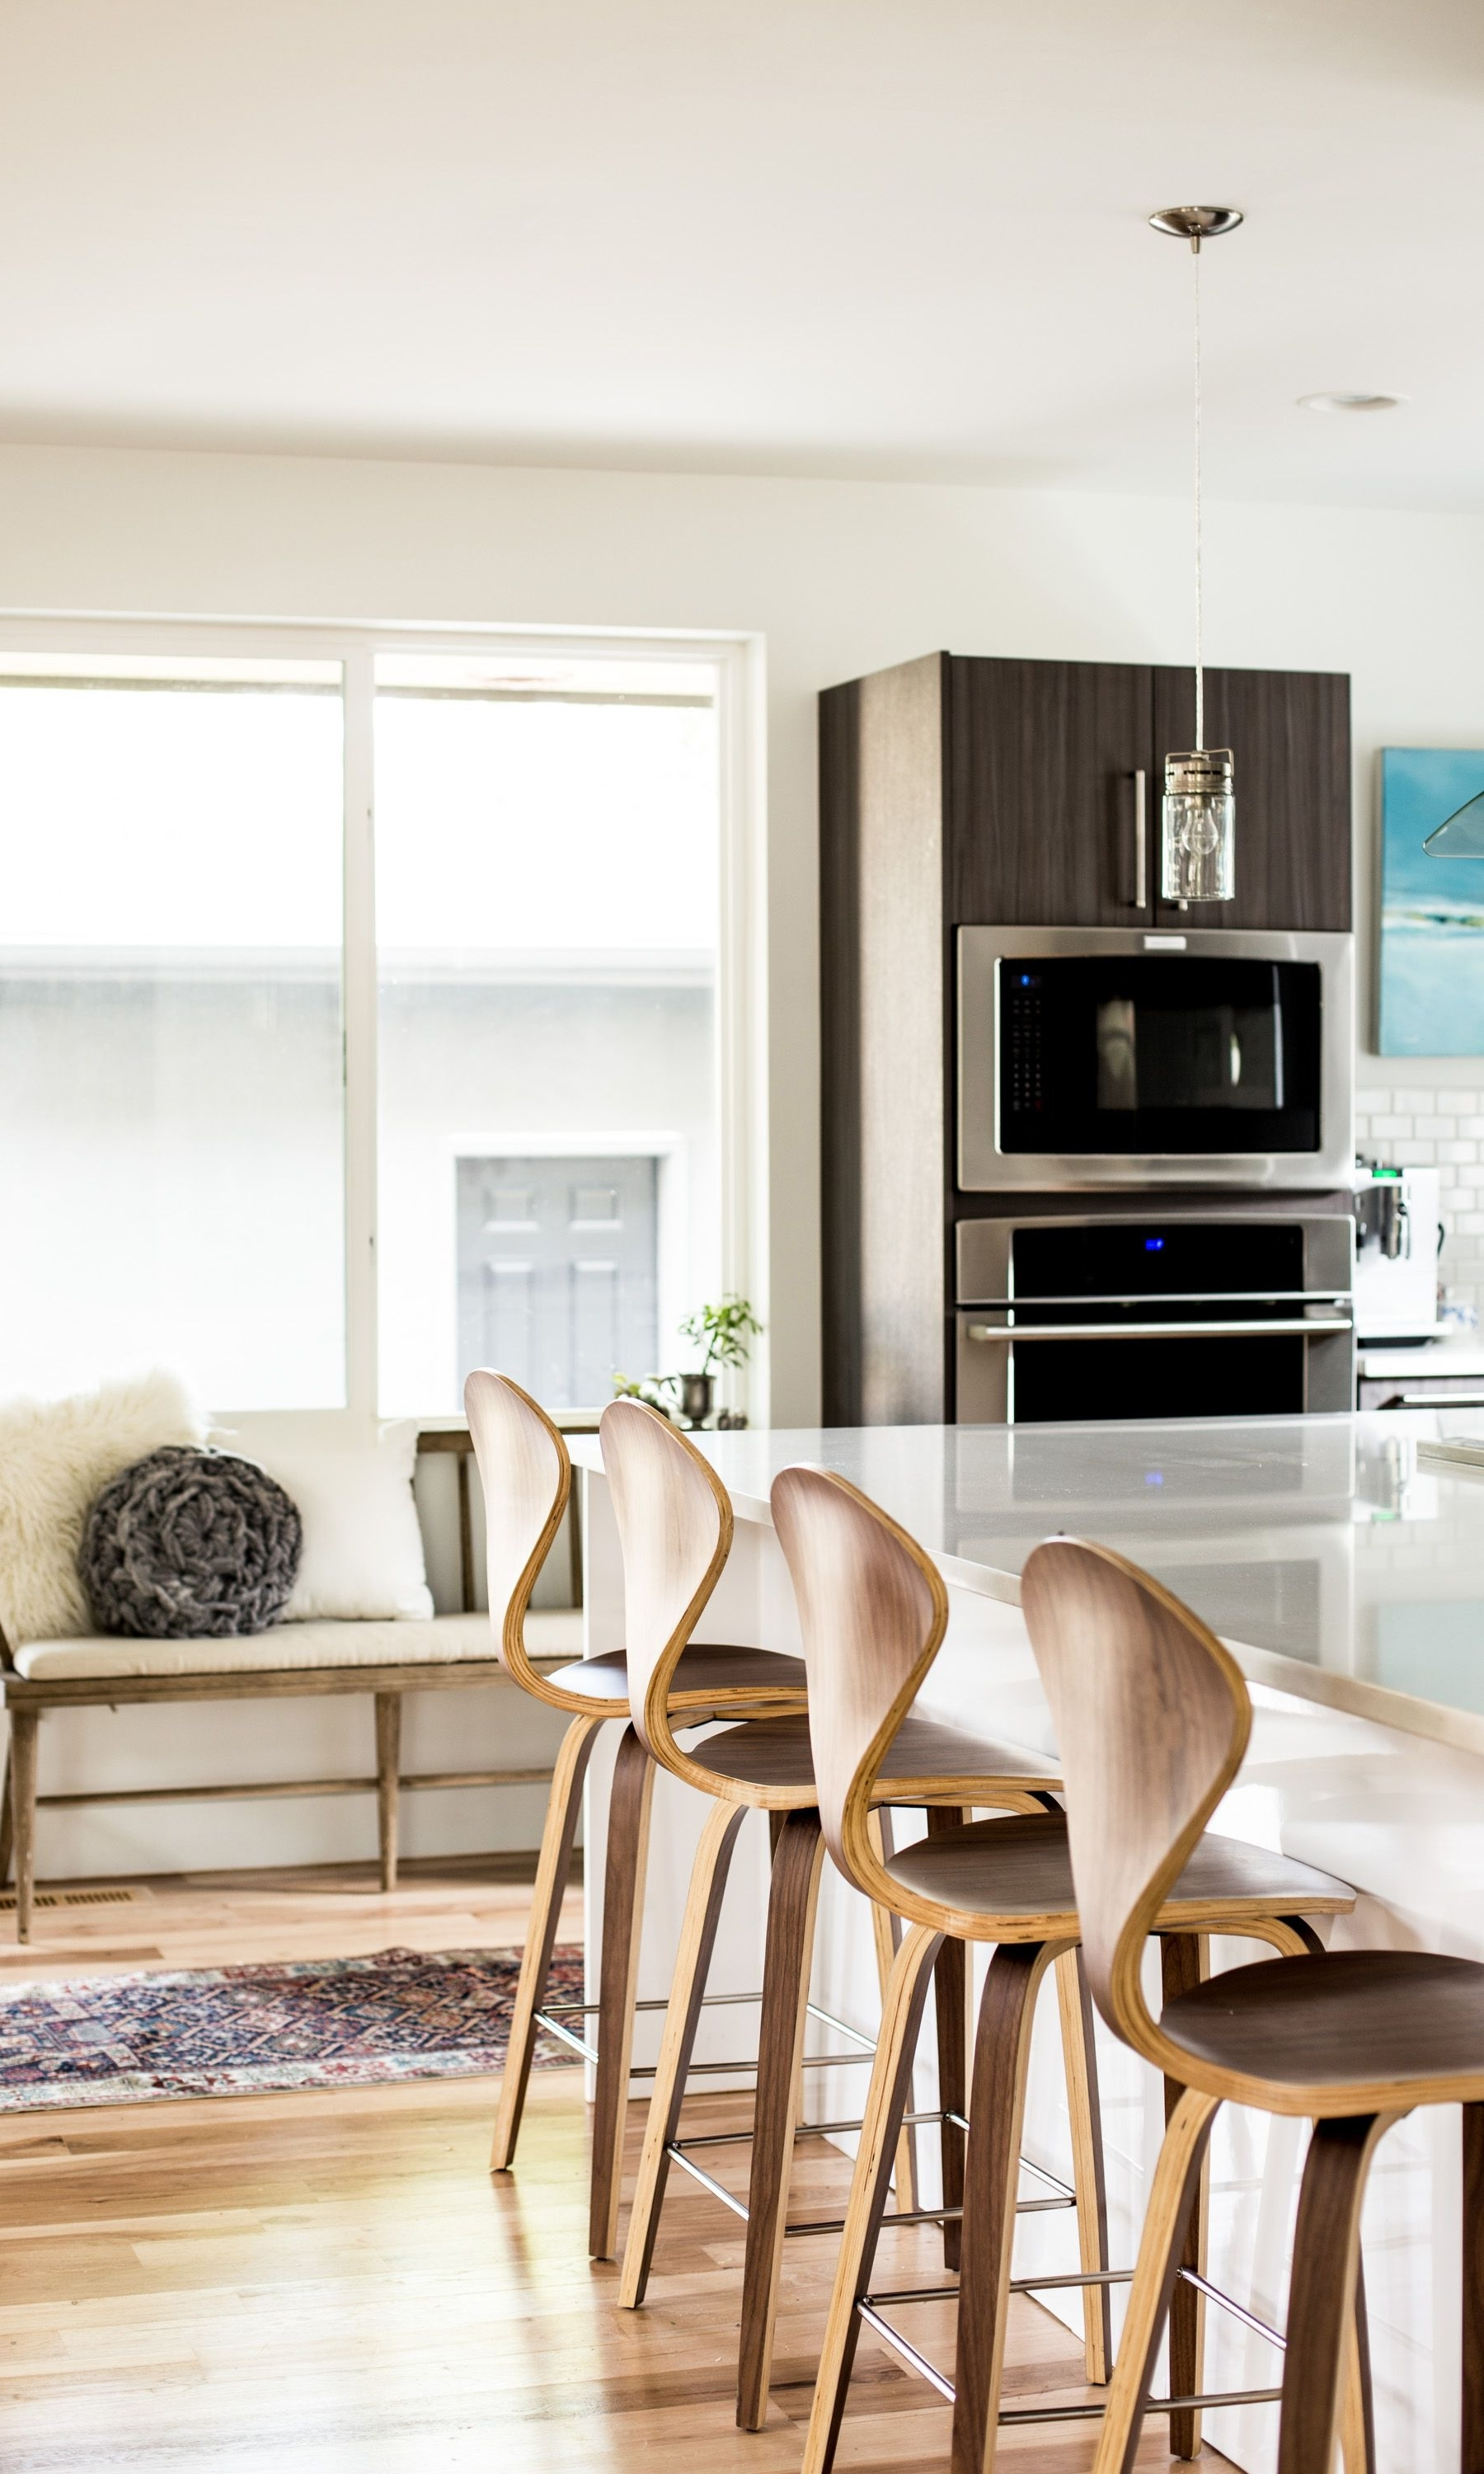 Laurent 7 Piece Counter Sets With Wood Counterstools Inside Most Recent Norman Counter Stool (View 6 of 25)